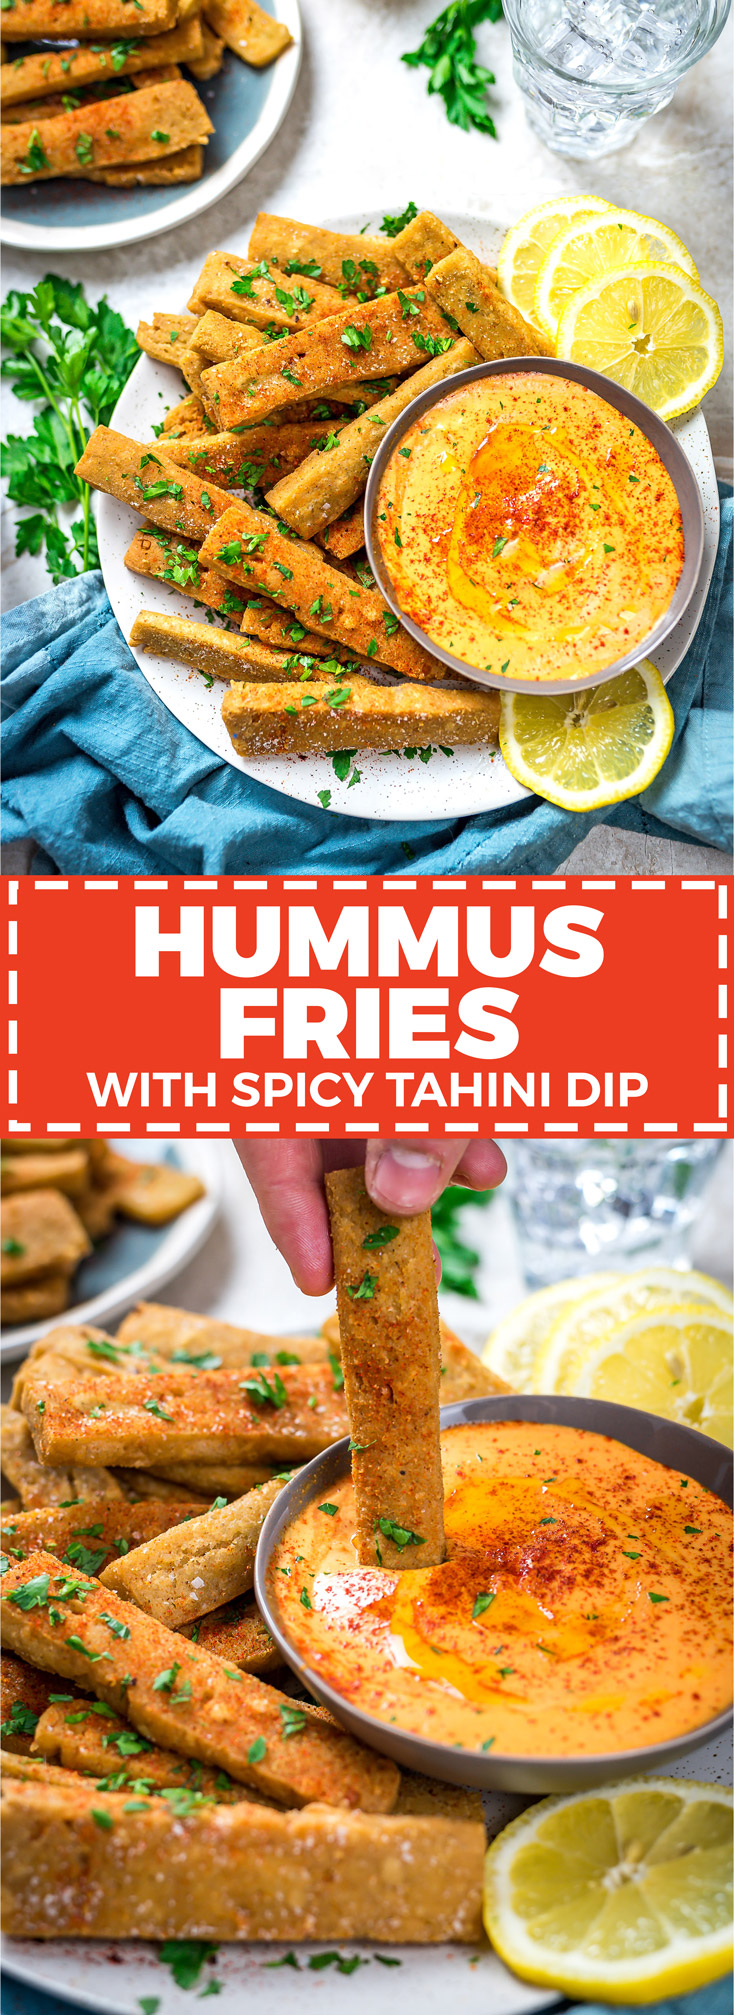 Hummus Fries with Spicy Tahini Dip. These fritters are made with chickpea flour and tahini for a crisp-exteriored snack with a custardy, hummus-like center. | hostthetoast.com